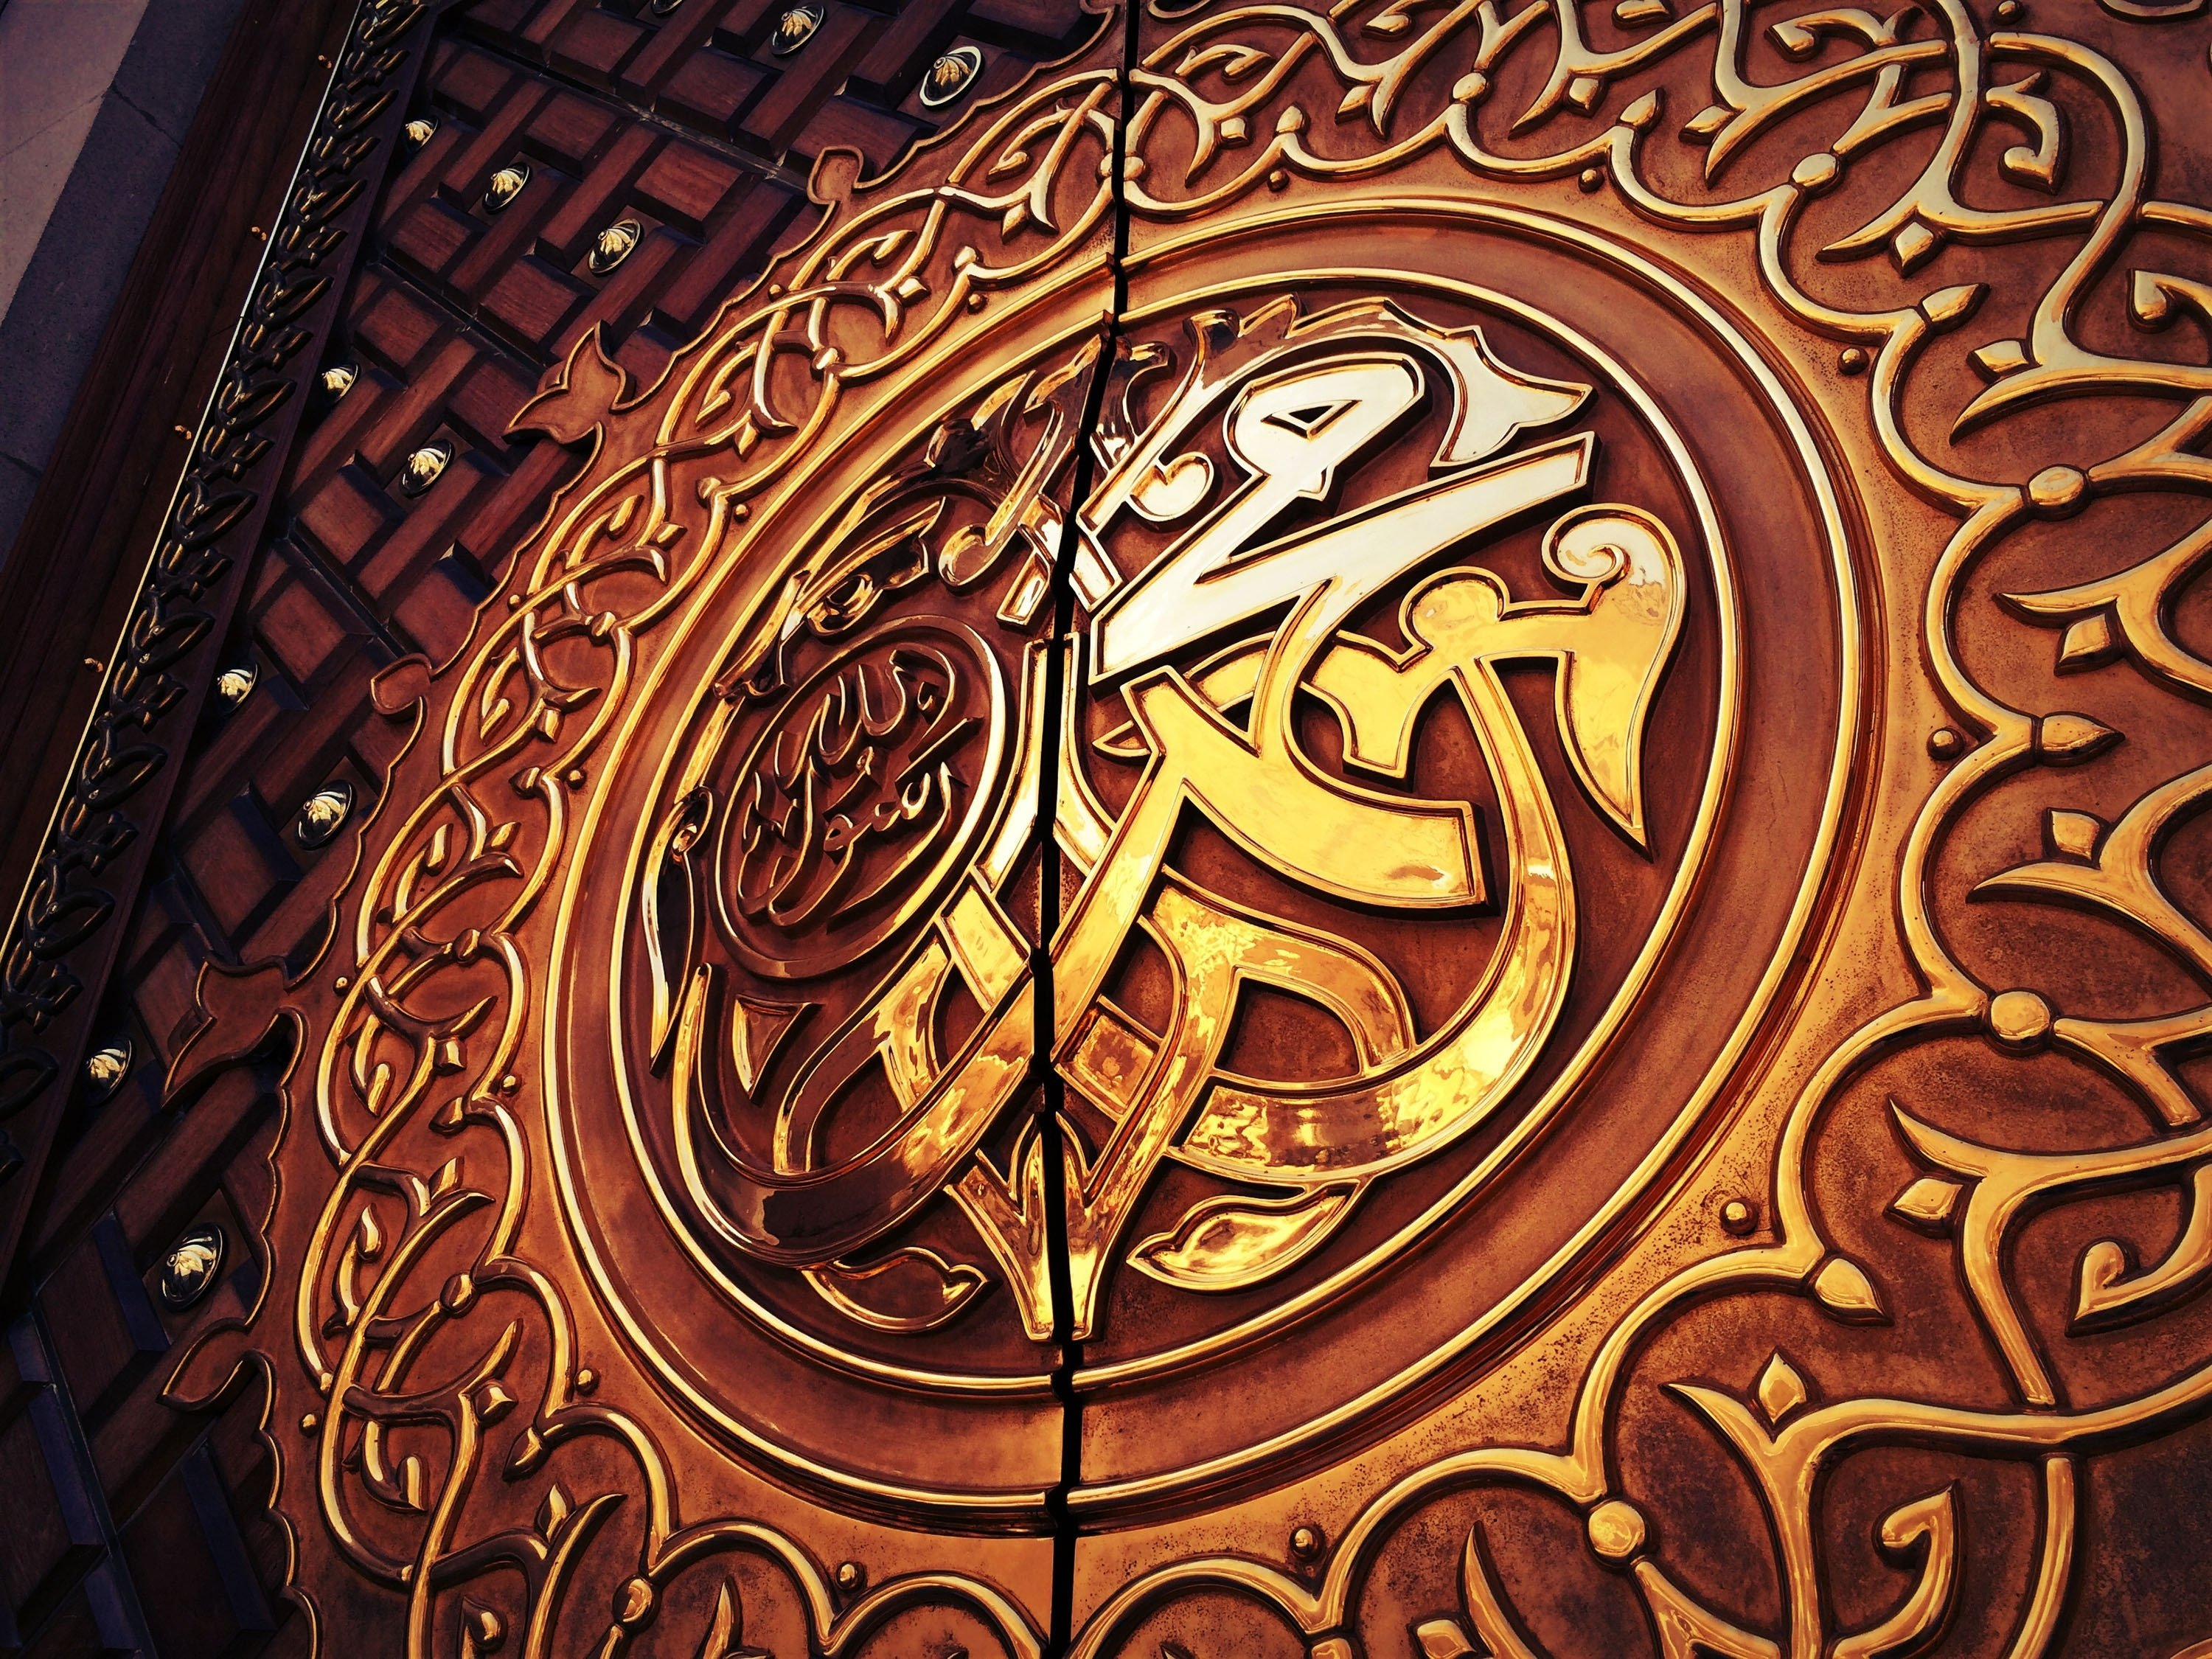 Arabic calligraphy depicting the Prophet Muhammad's name written on the door of Al-Masjid al-Nabawi (Mosque of the Prophet) where the tomb of the Prophet Muhammad is also located, Medina, Saudi Arabia. (Shutterstock Photo)